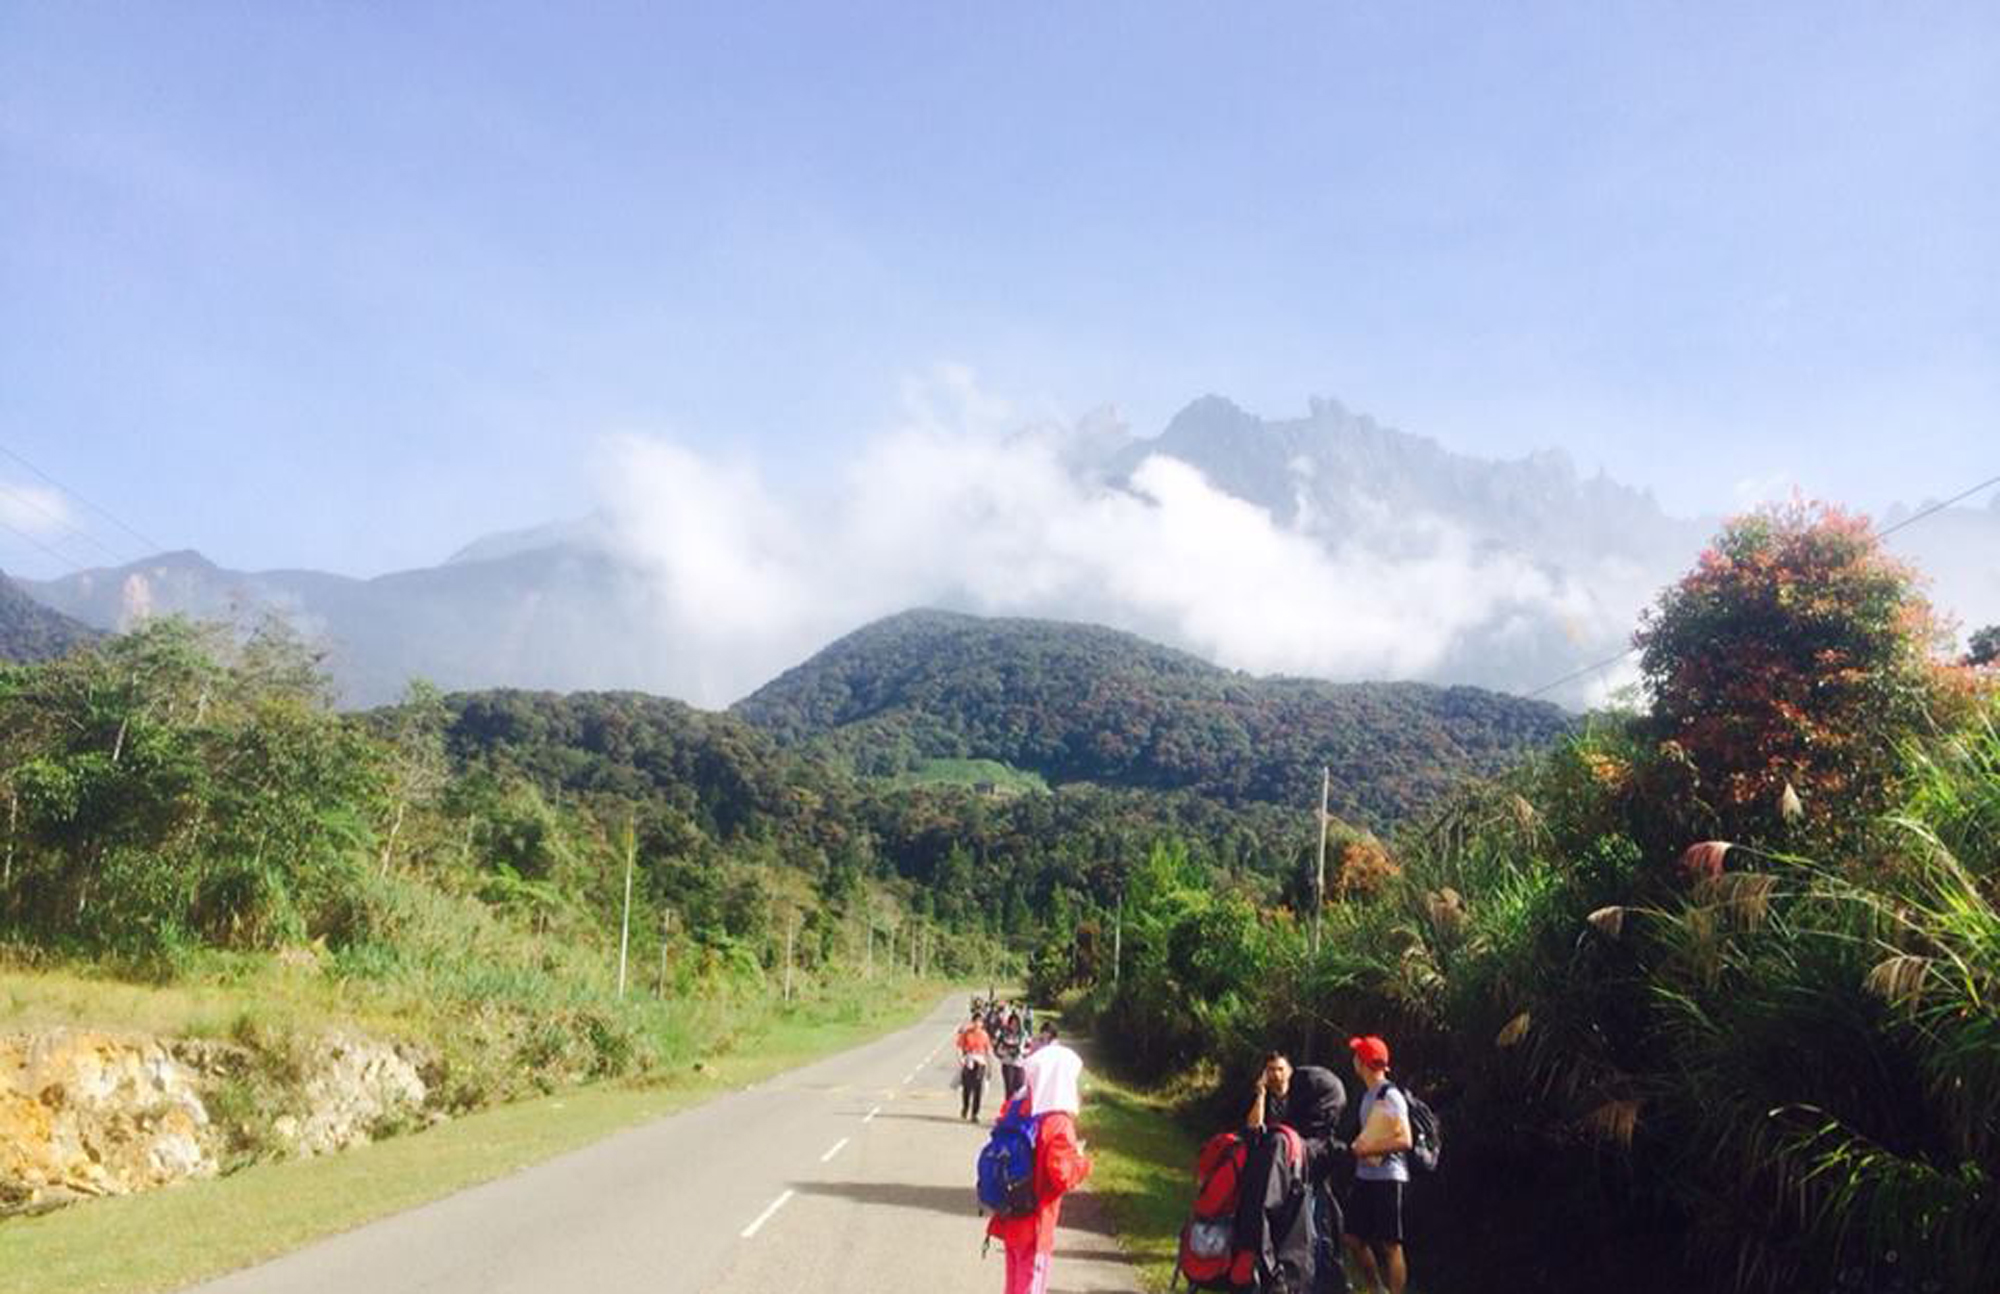 Tourists walk away from Mount Kinabalu hours after a magnitude 5.9 earthquake shook the area in Kundasang, Sabah, Malaysia, June 5, 2015.